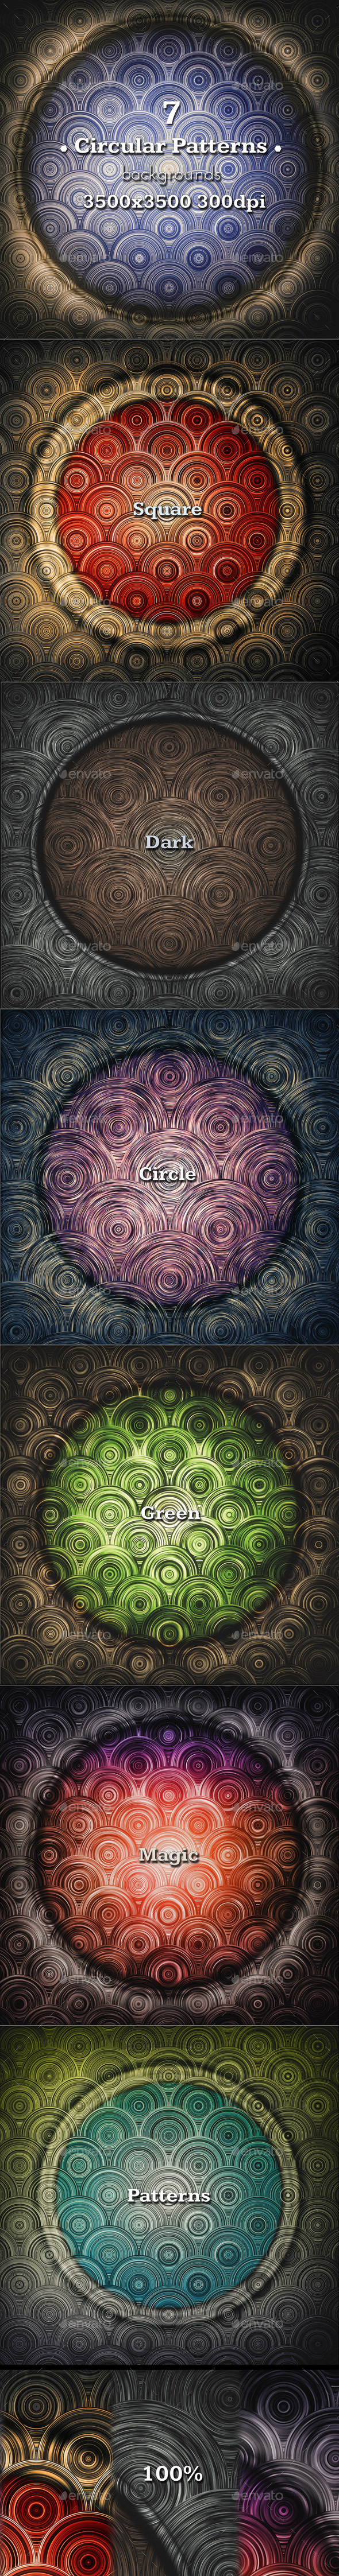 Square Circular Pattern - Patterns Backgrounds